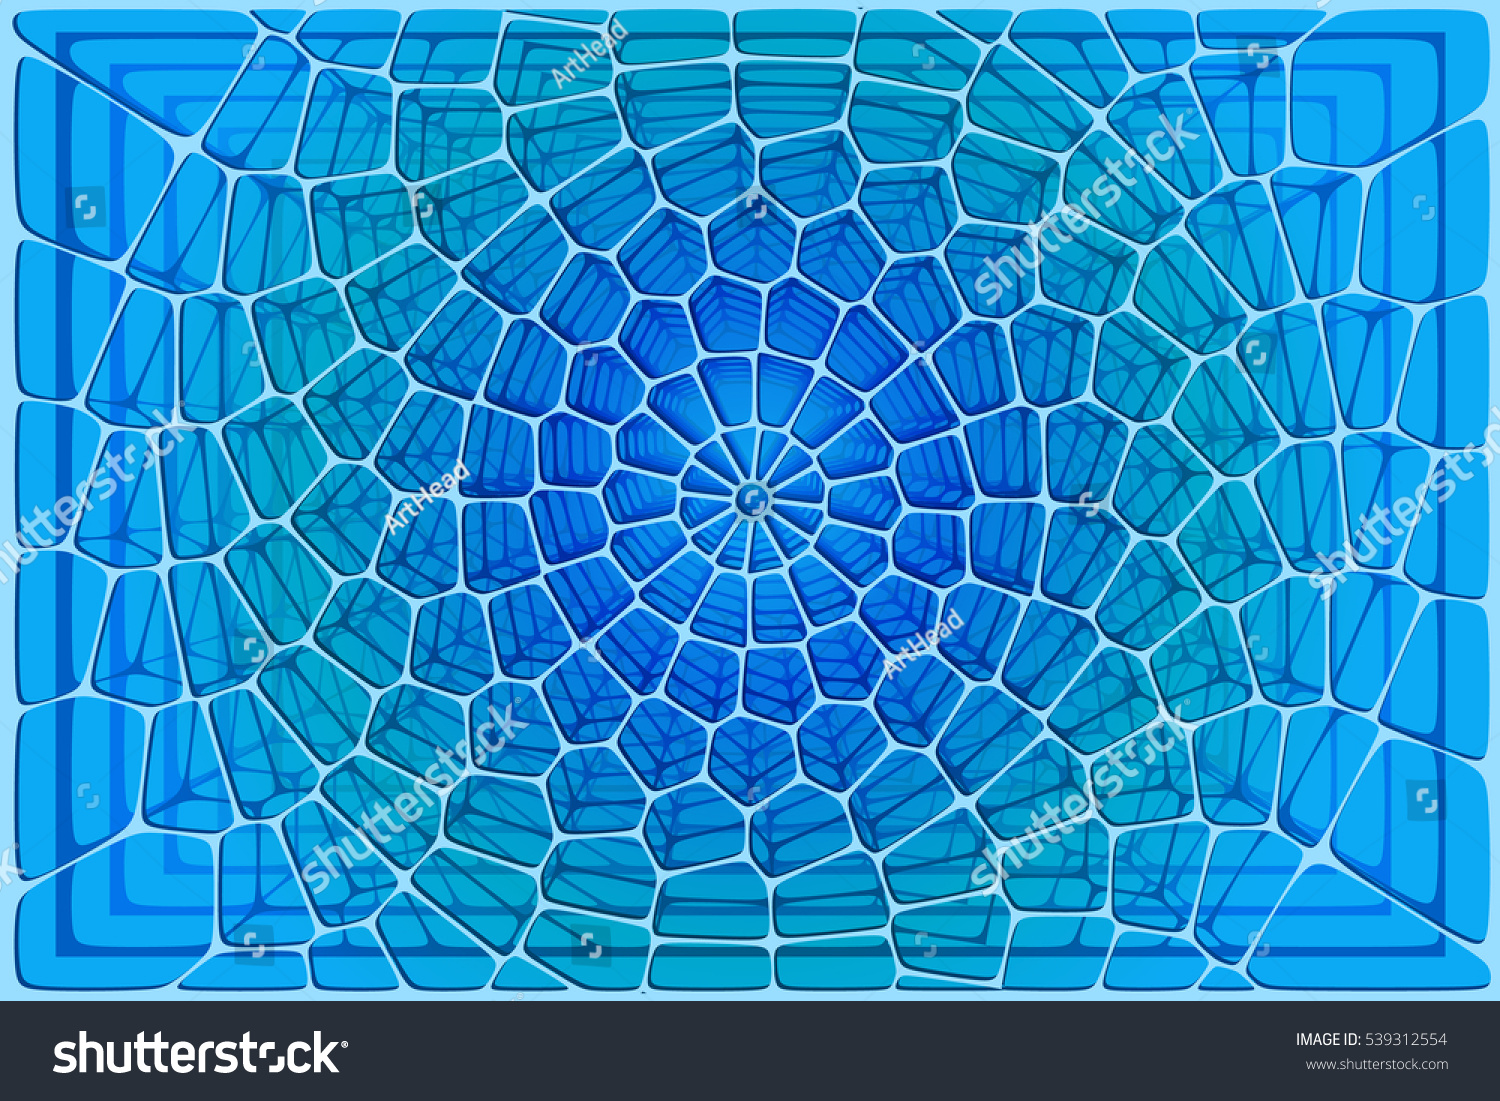 Abstract Tile Composition Ceramic Geometric Shapes Stock Vector ...